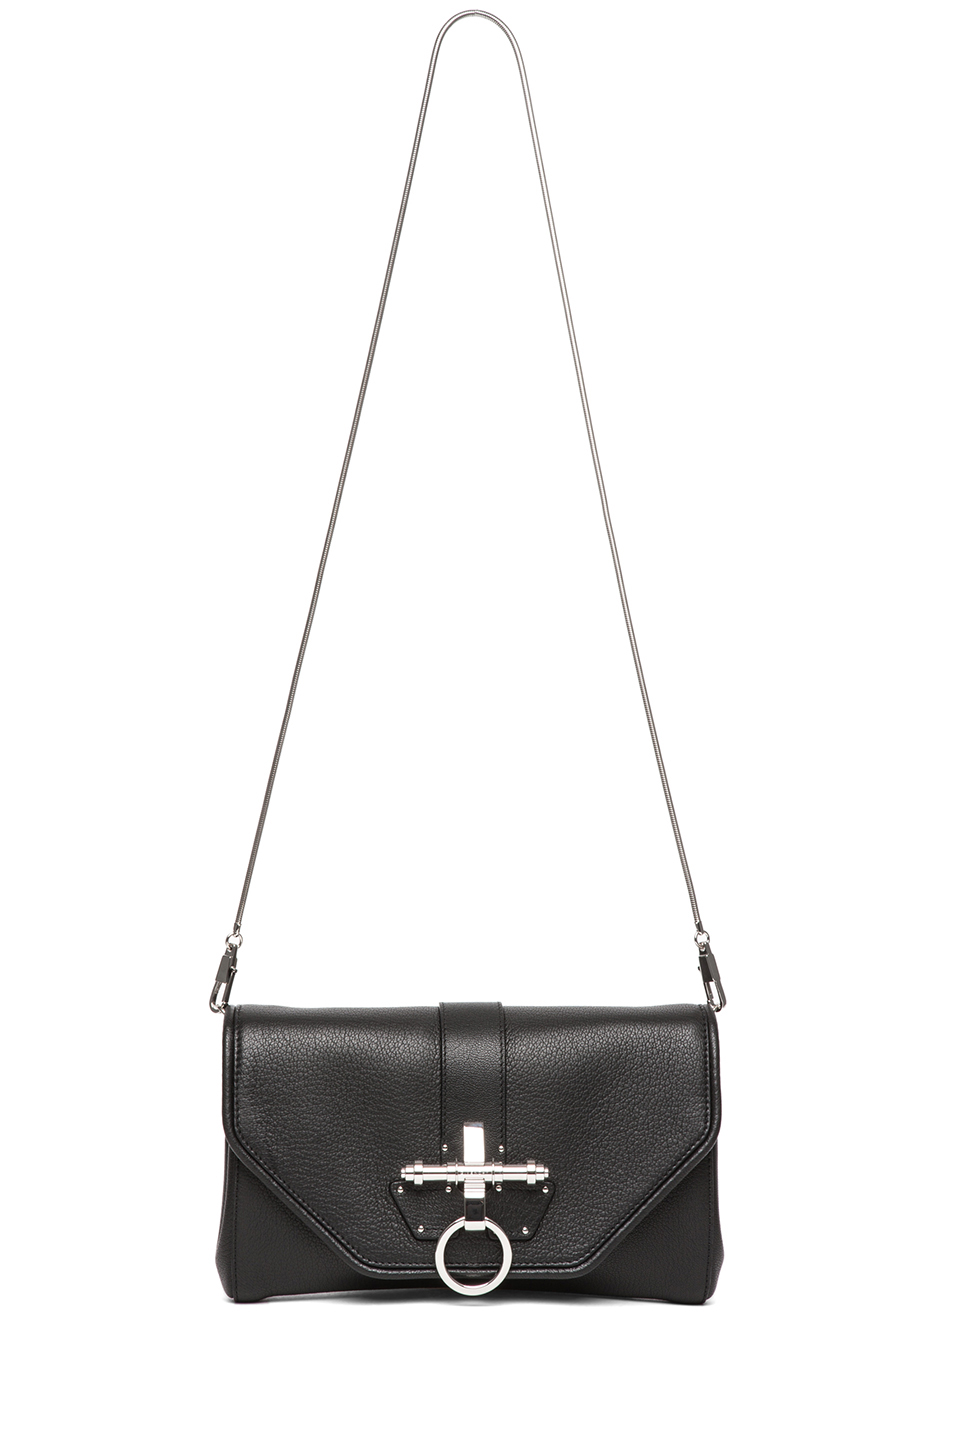 GIVENCHY Obsedia with Snake Chain in Black